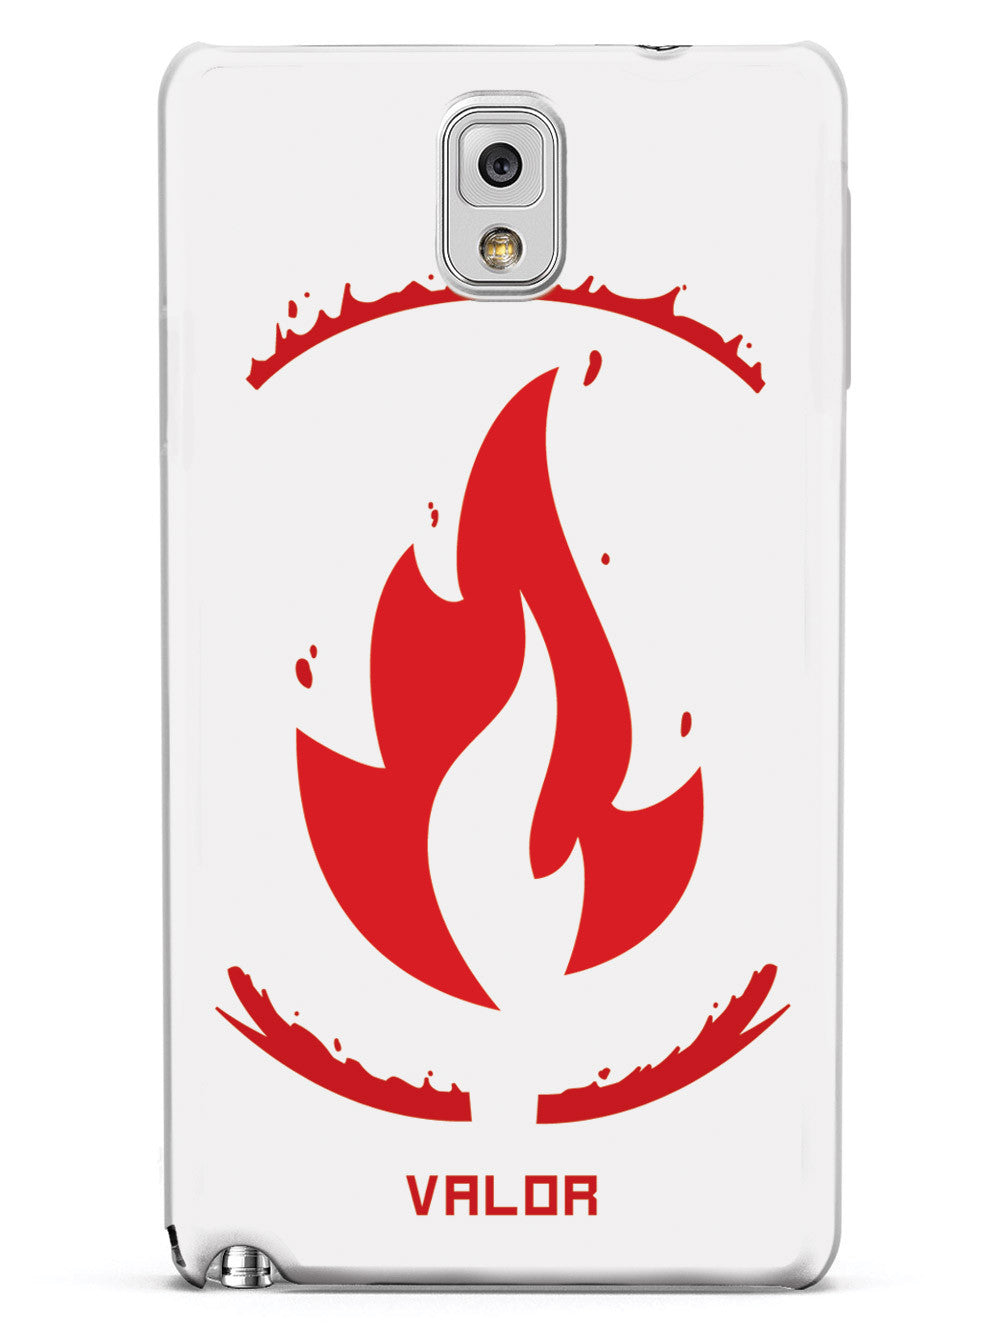 Team Valor Emblem - White Case